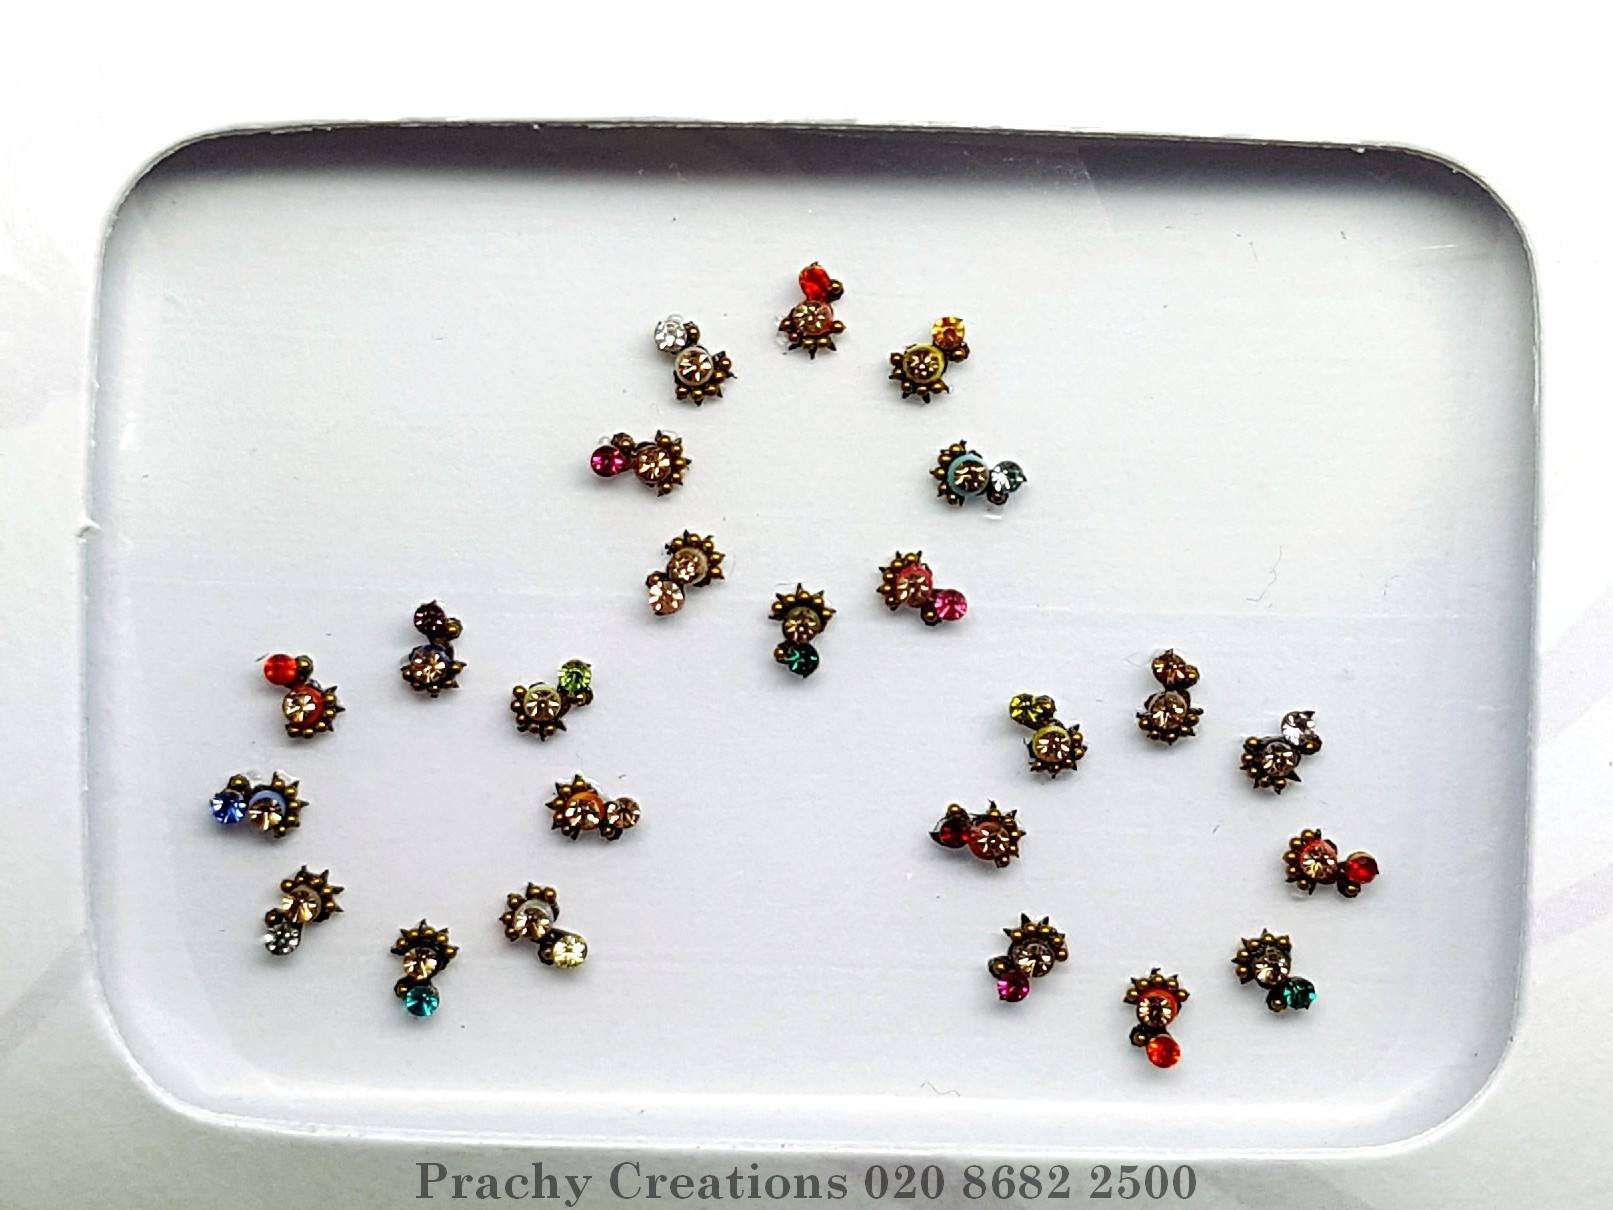 Pack of 24 Tiny Bindis in various colours - 24 hrs dispatch - RR1062 kvp - Prachy Creations